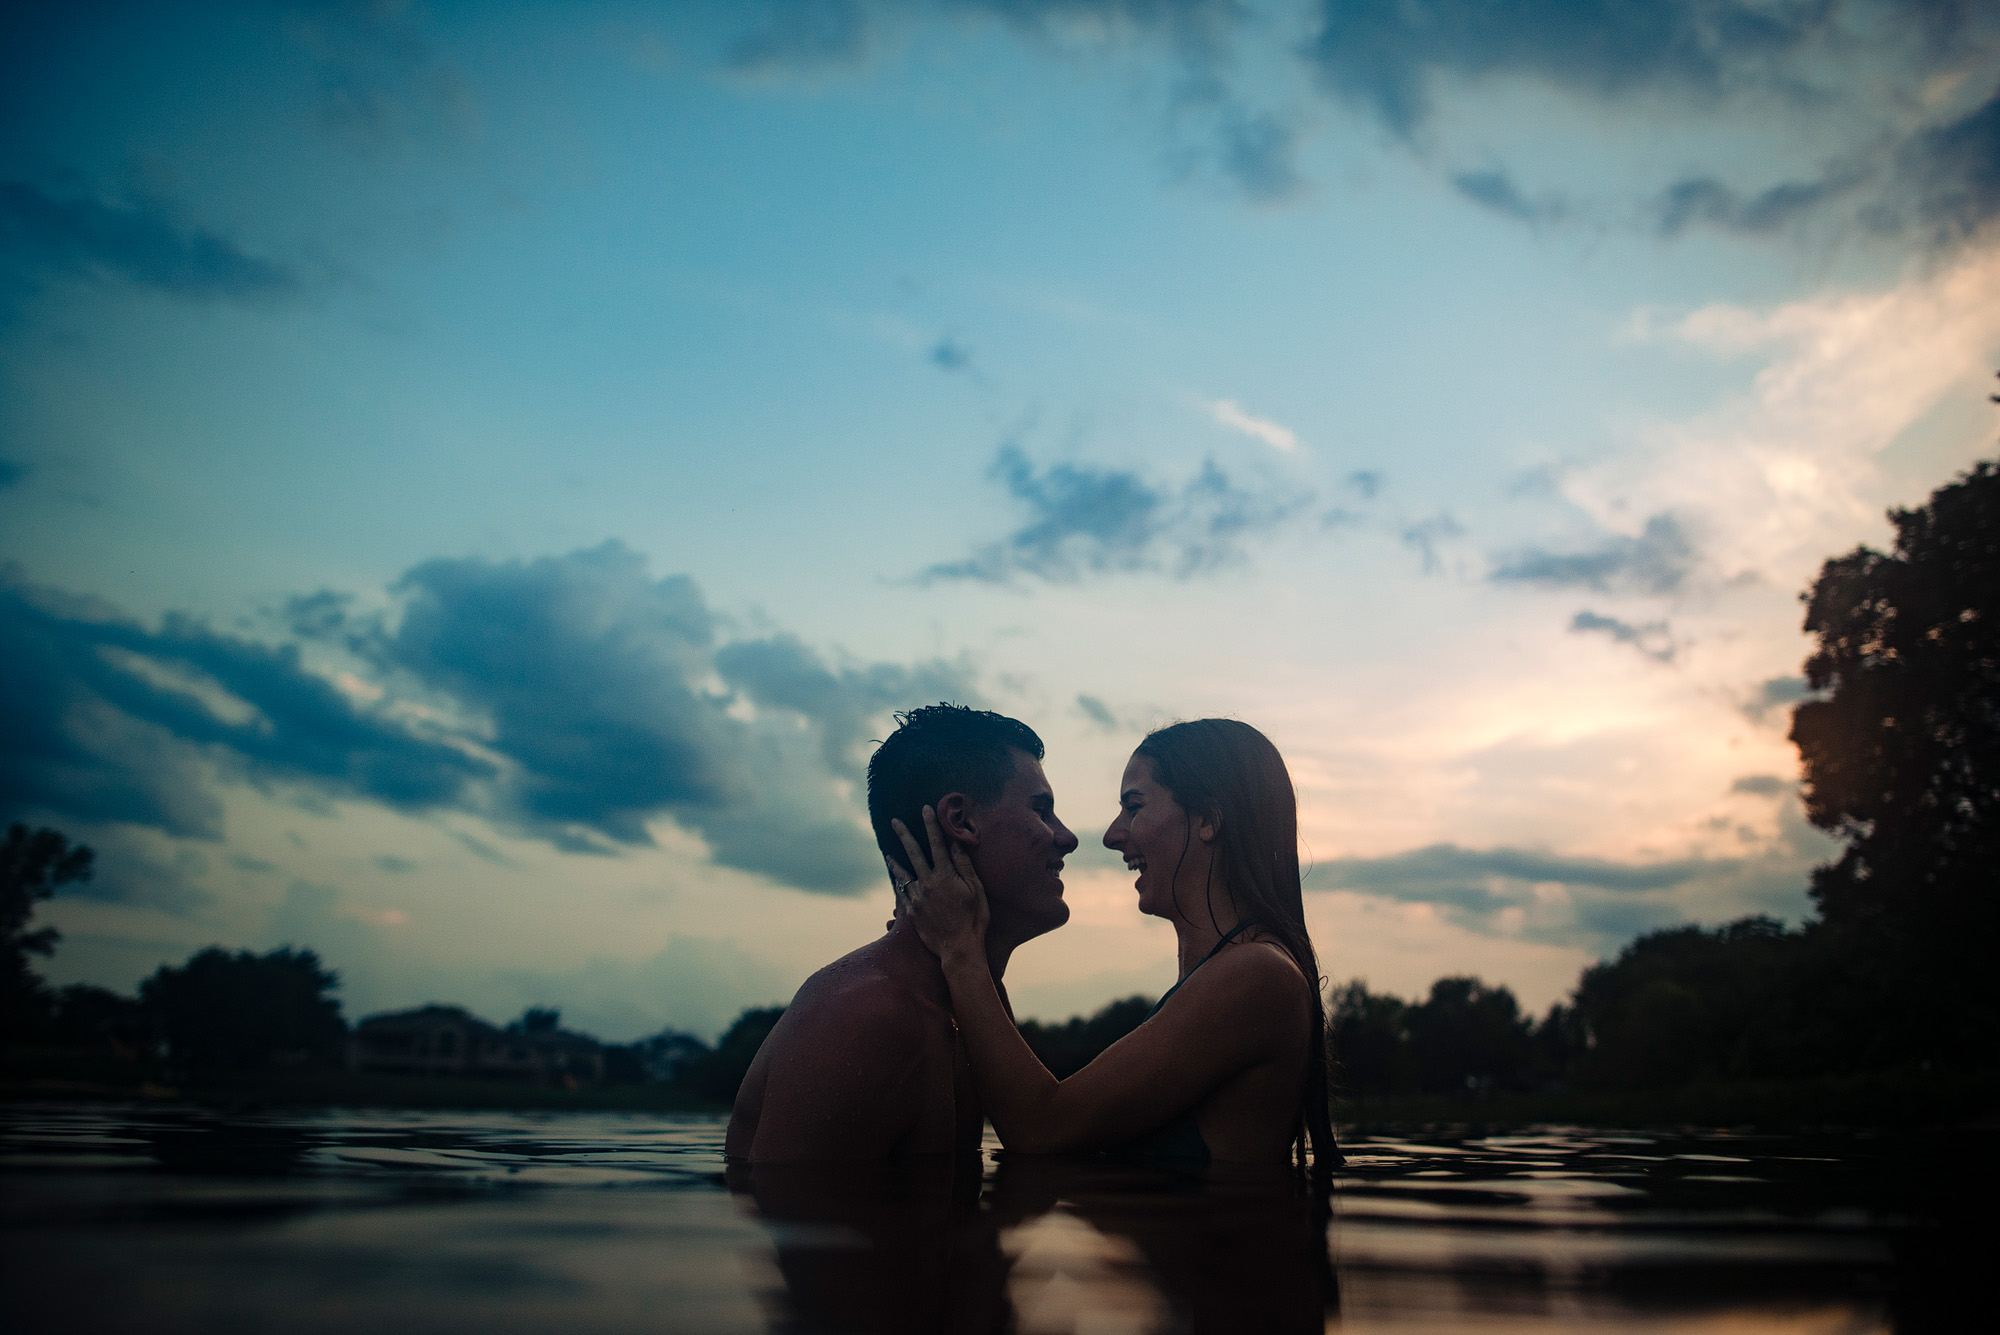 beautiful sunset picture of people in love